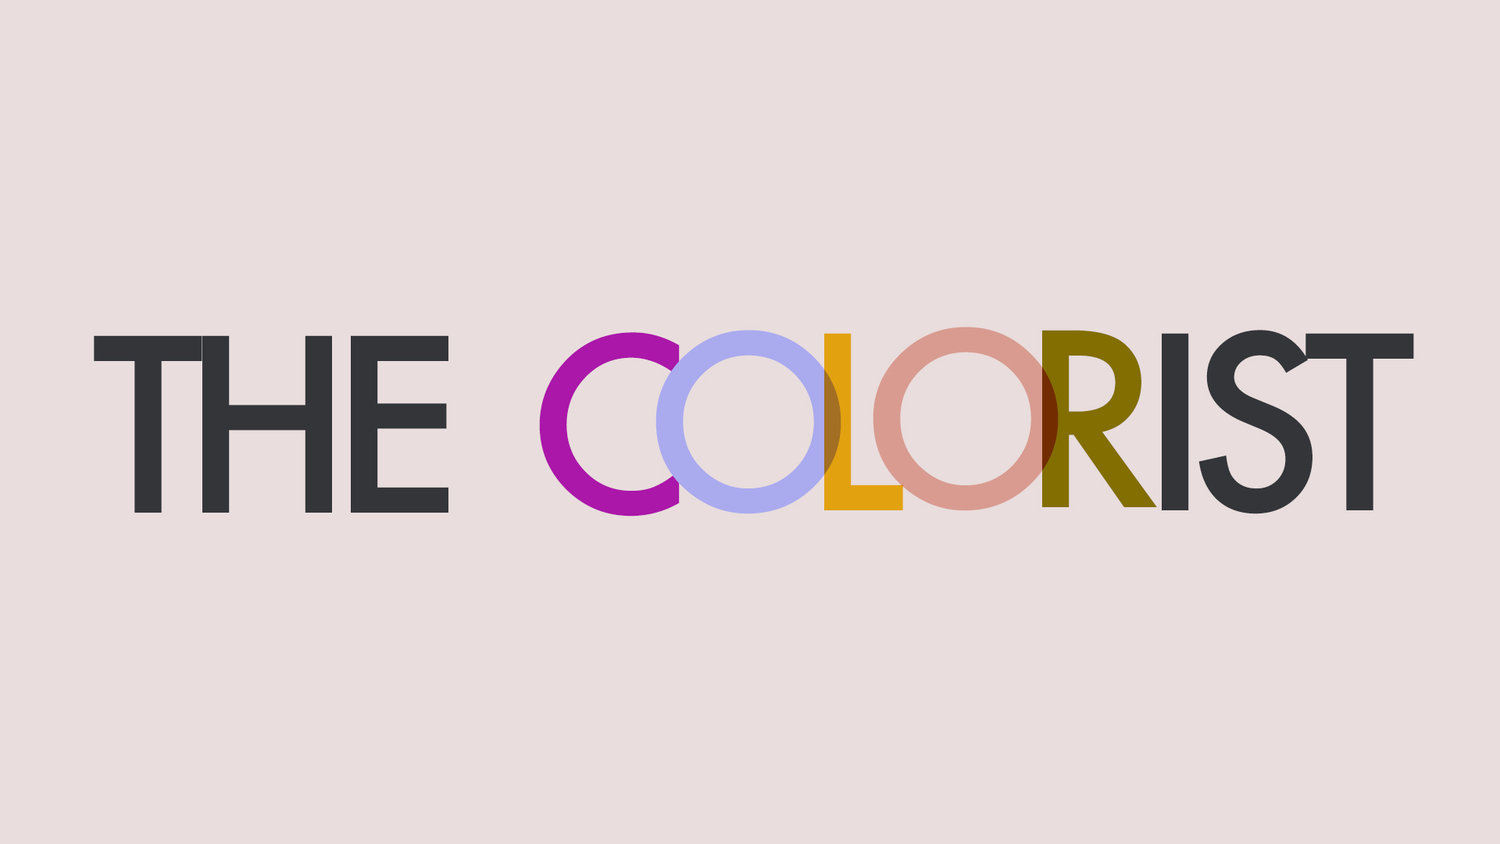 THE COLORIST: Creative Services for Fashion and Home Brands